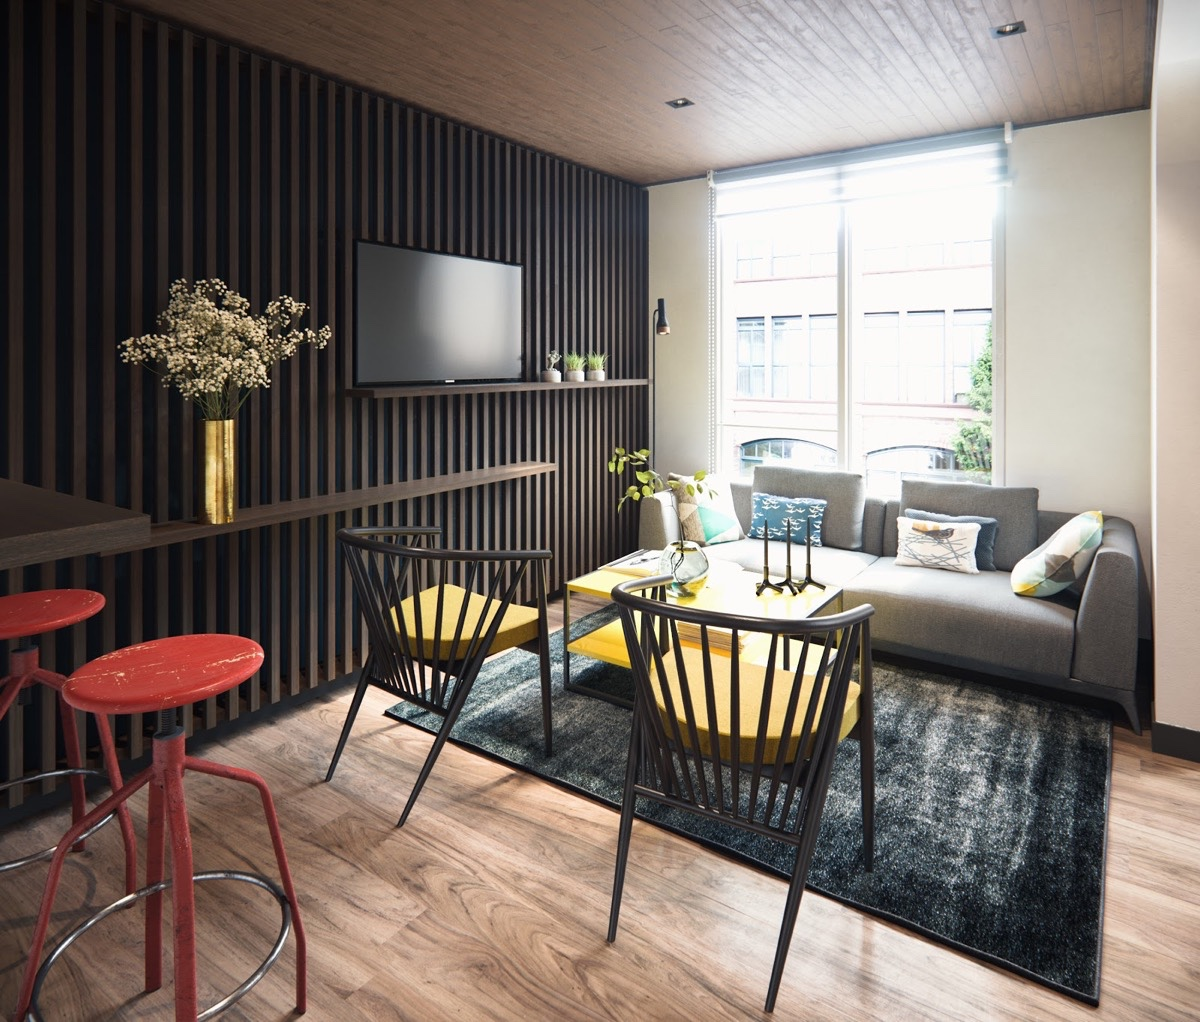 Small Apartments: 4 Small Apartments Showcase The Flexibility Of Compact Design